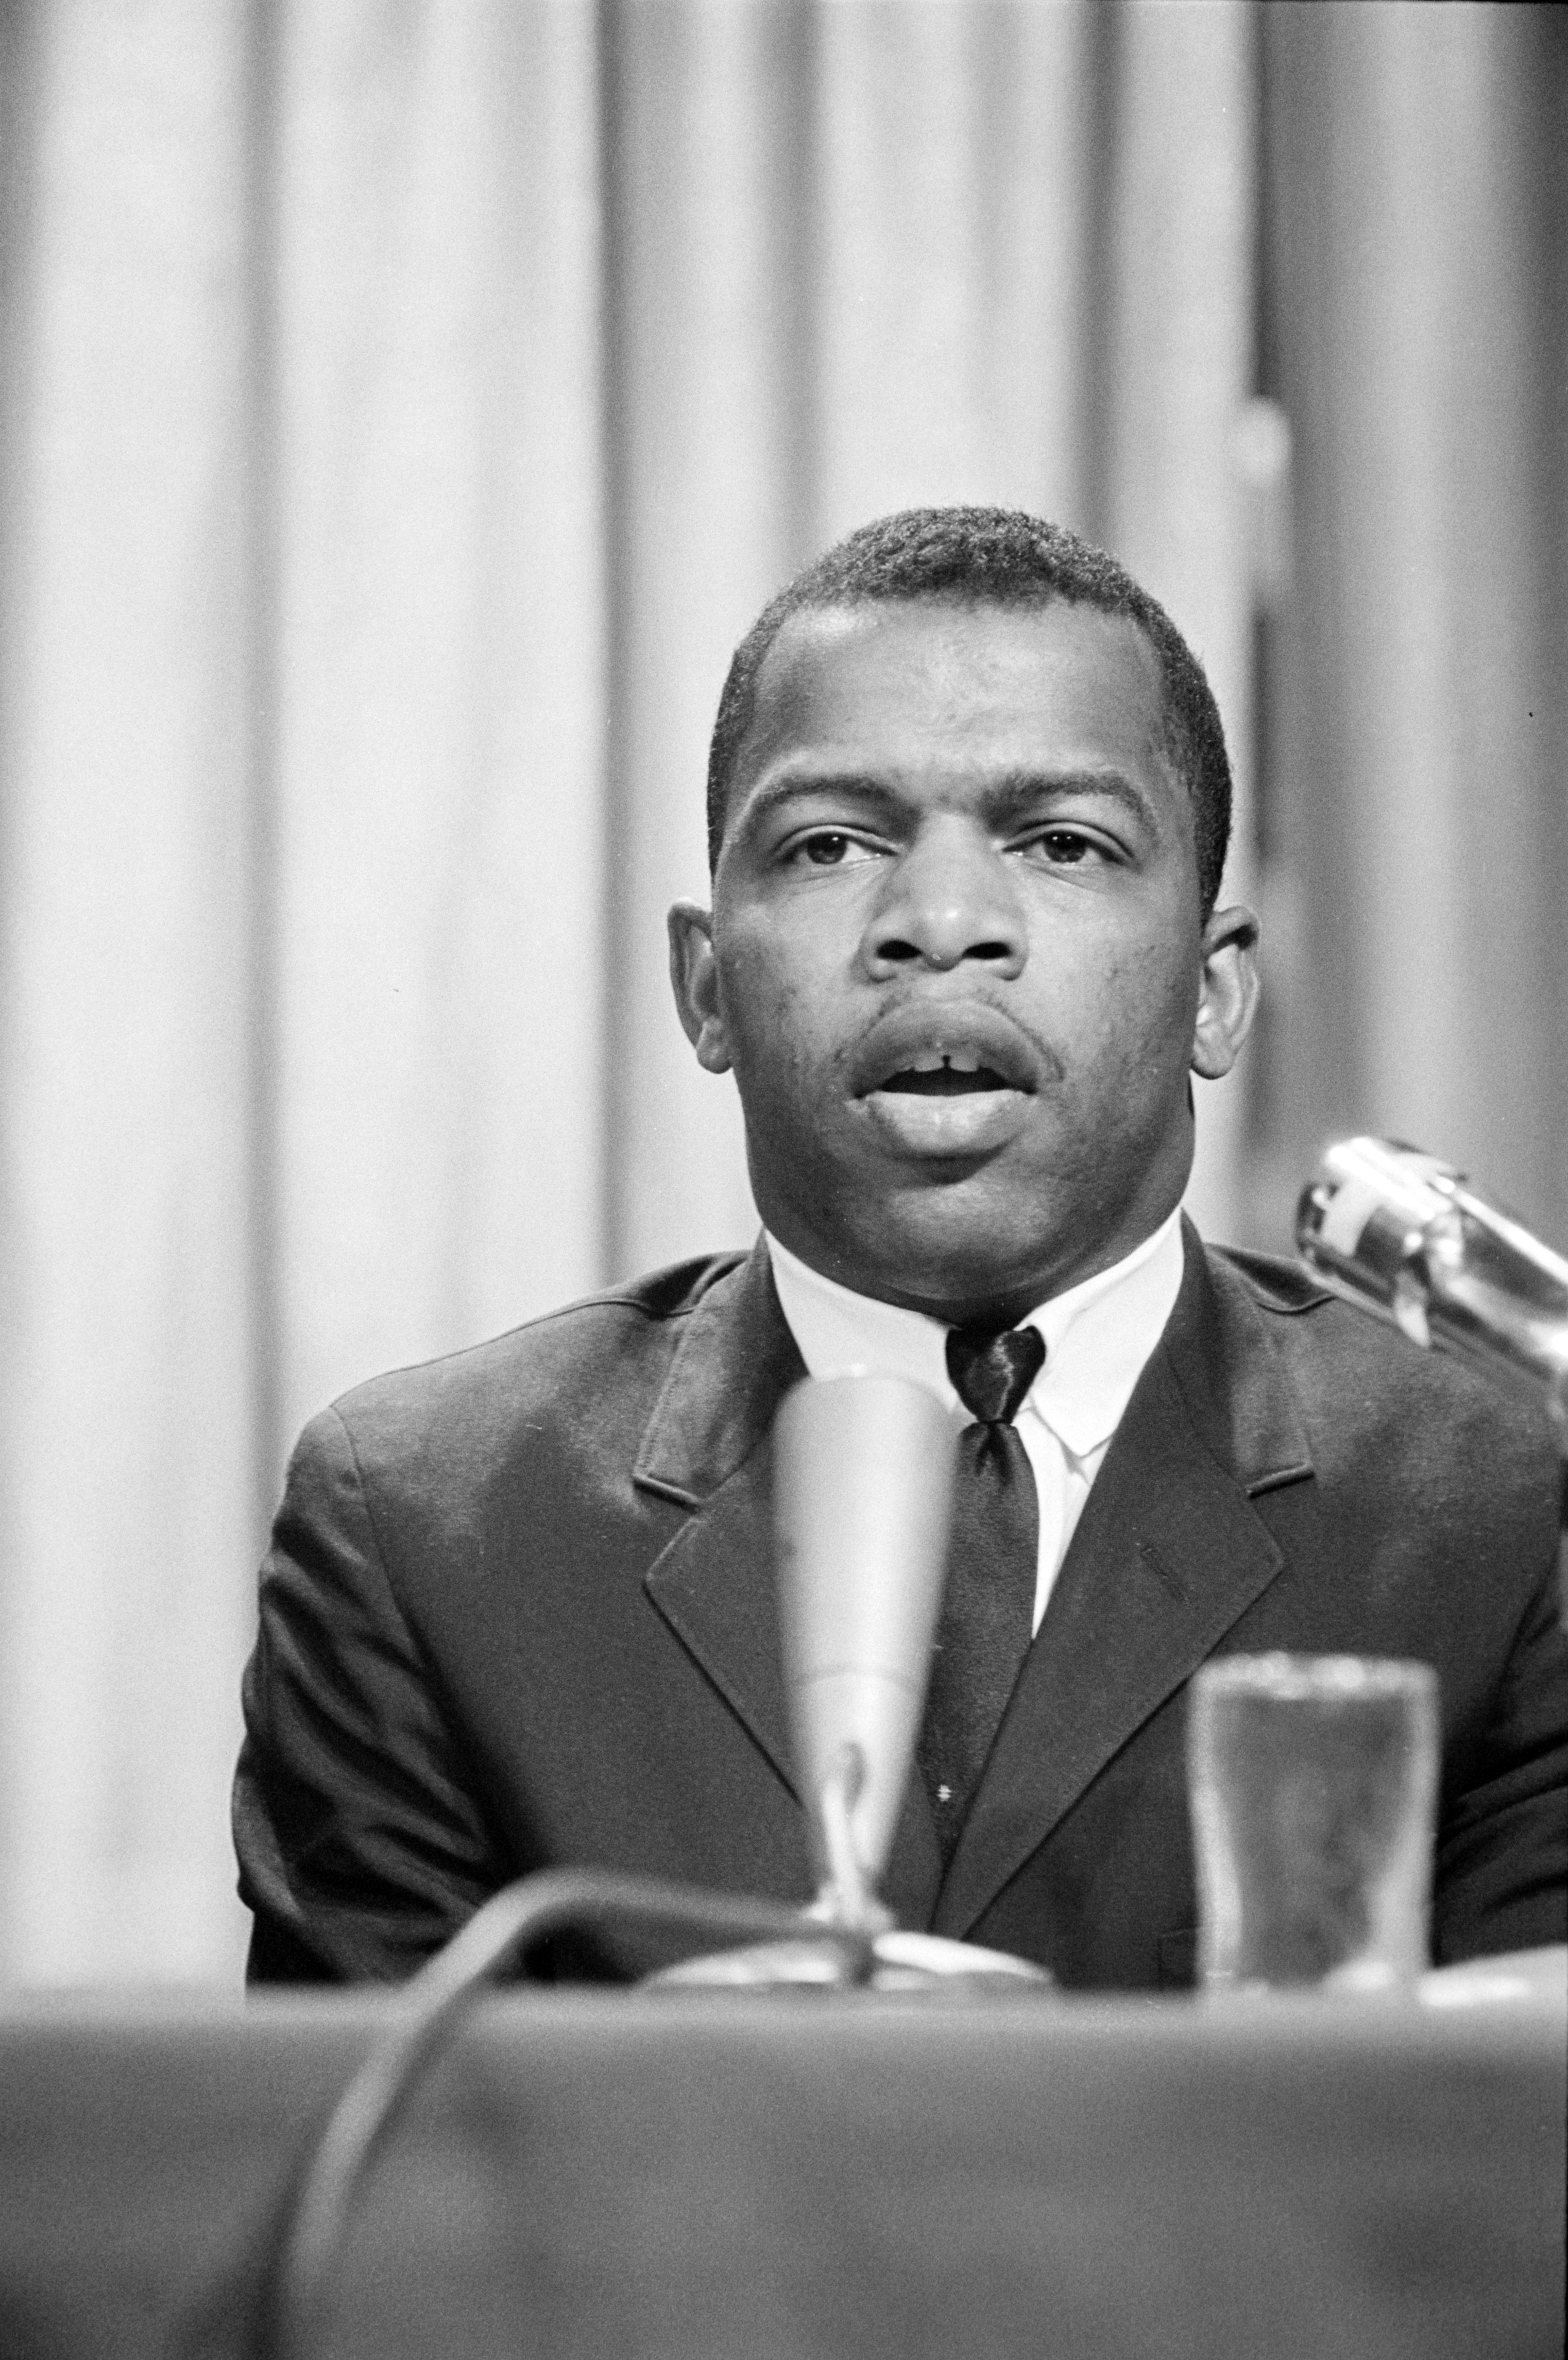 Events That Led to the Civil Rights Act of 1964